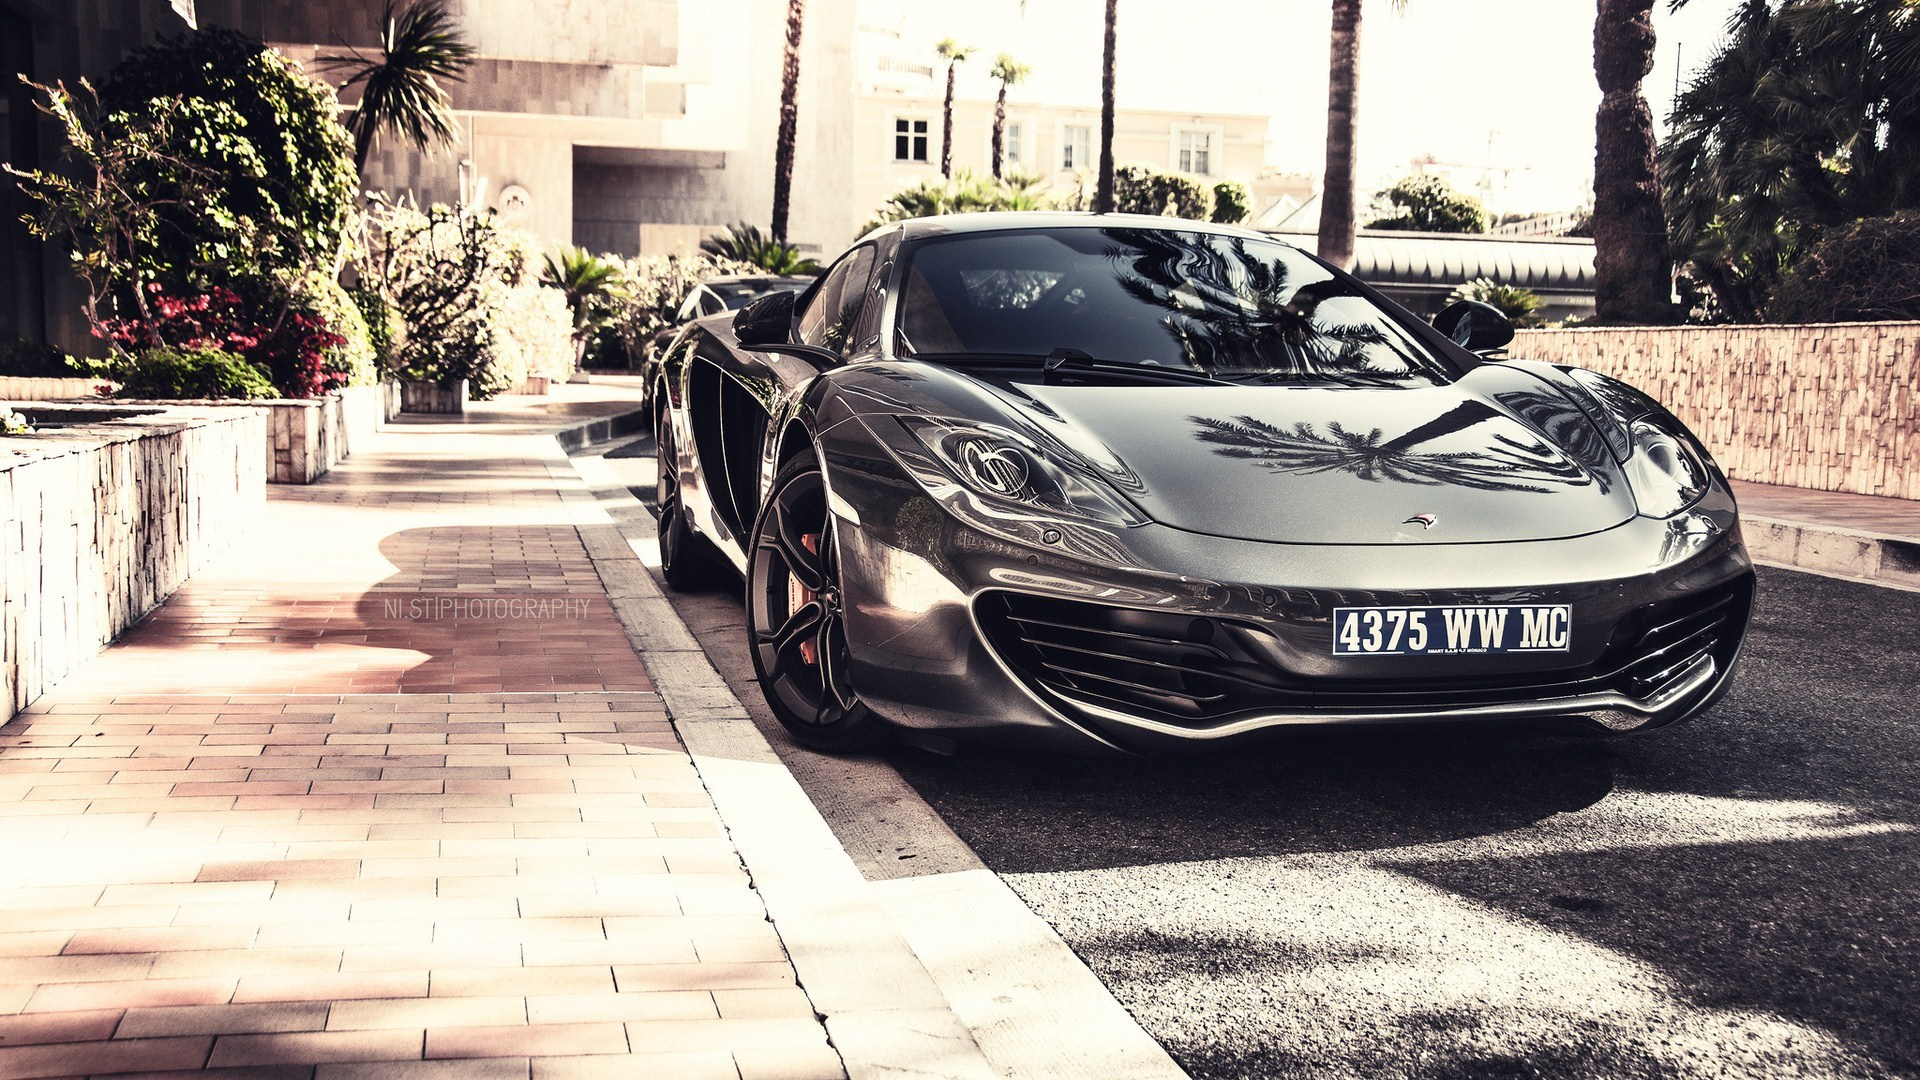 Car McLaren MP4-12C Street Photo